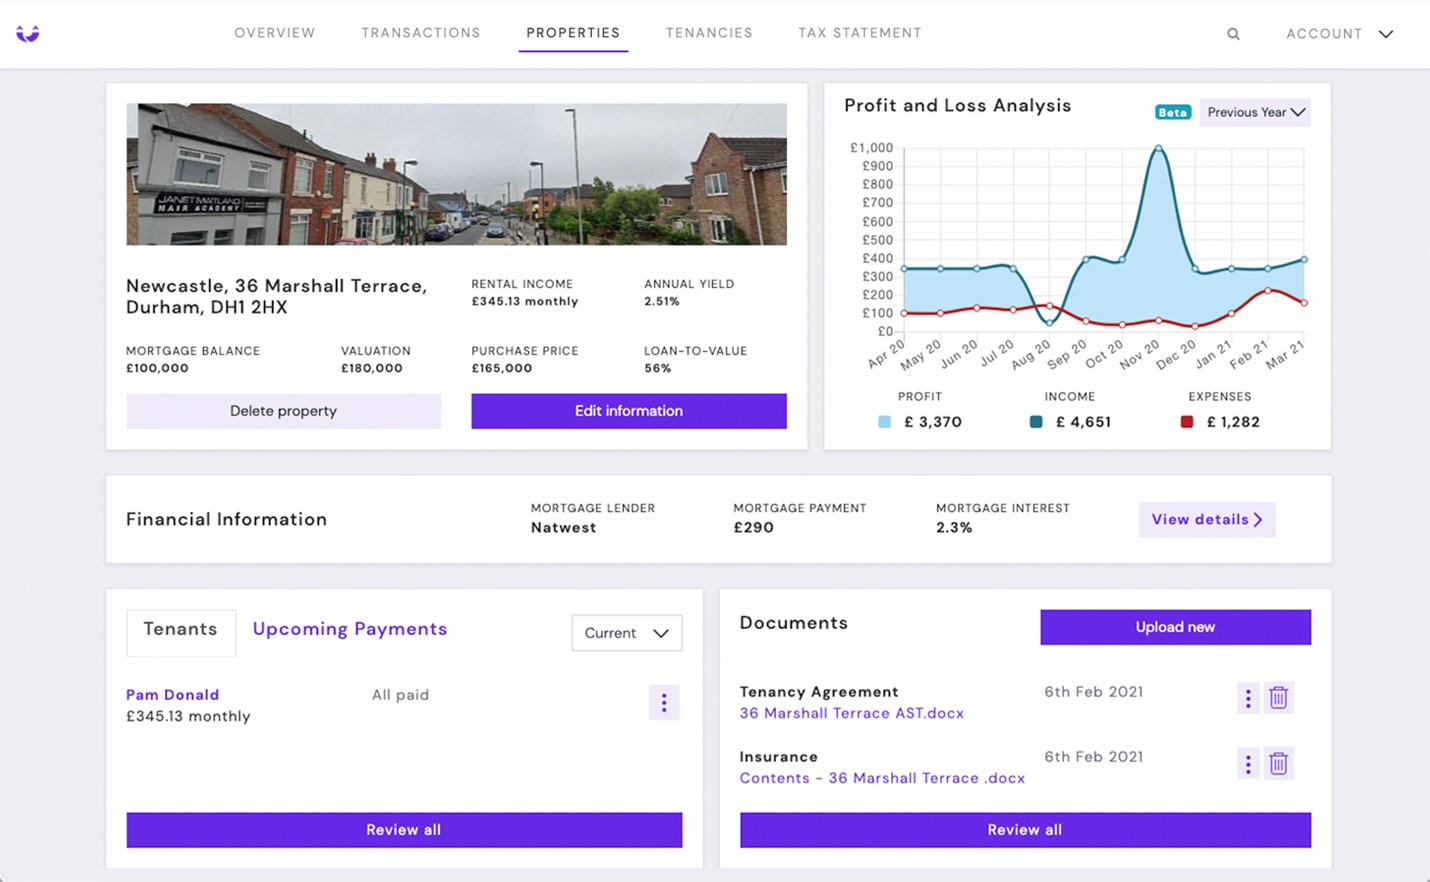 edit or delete property information, view financial information for your property, upcoming payments and documents, profit and loss analysis